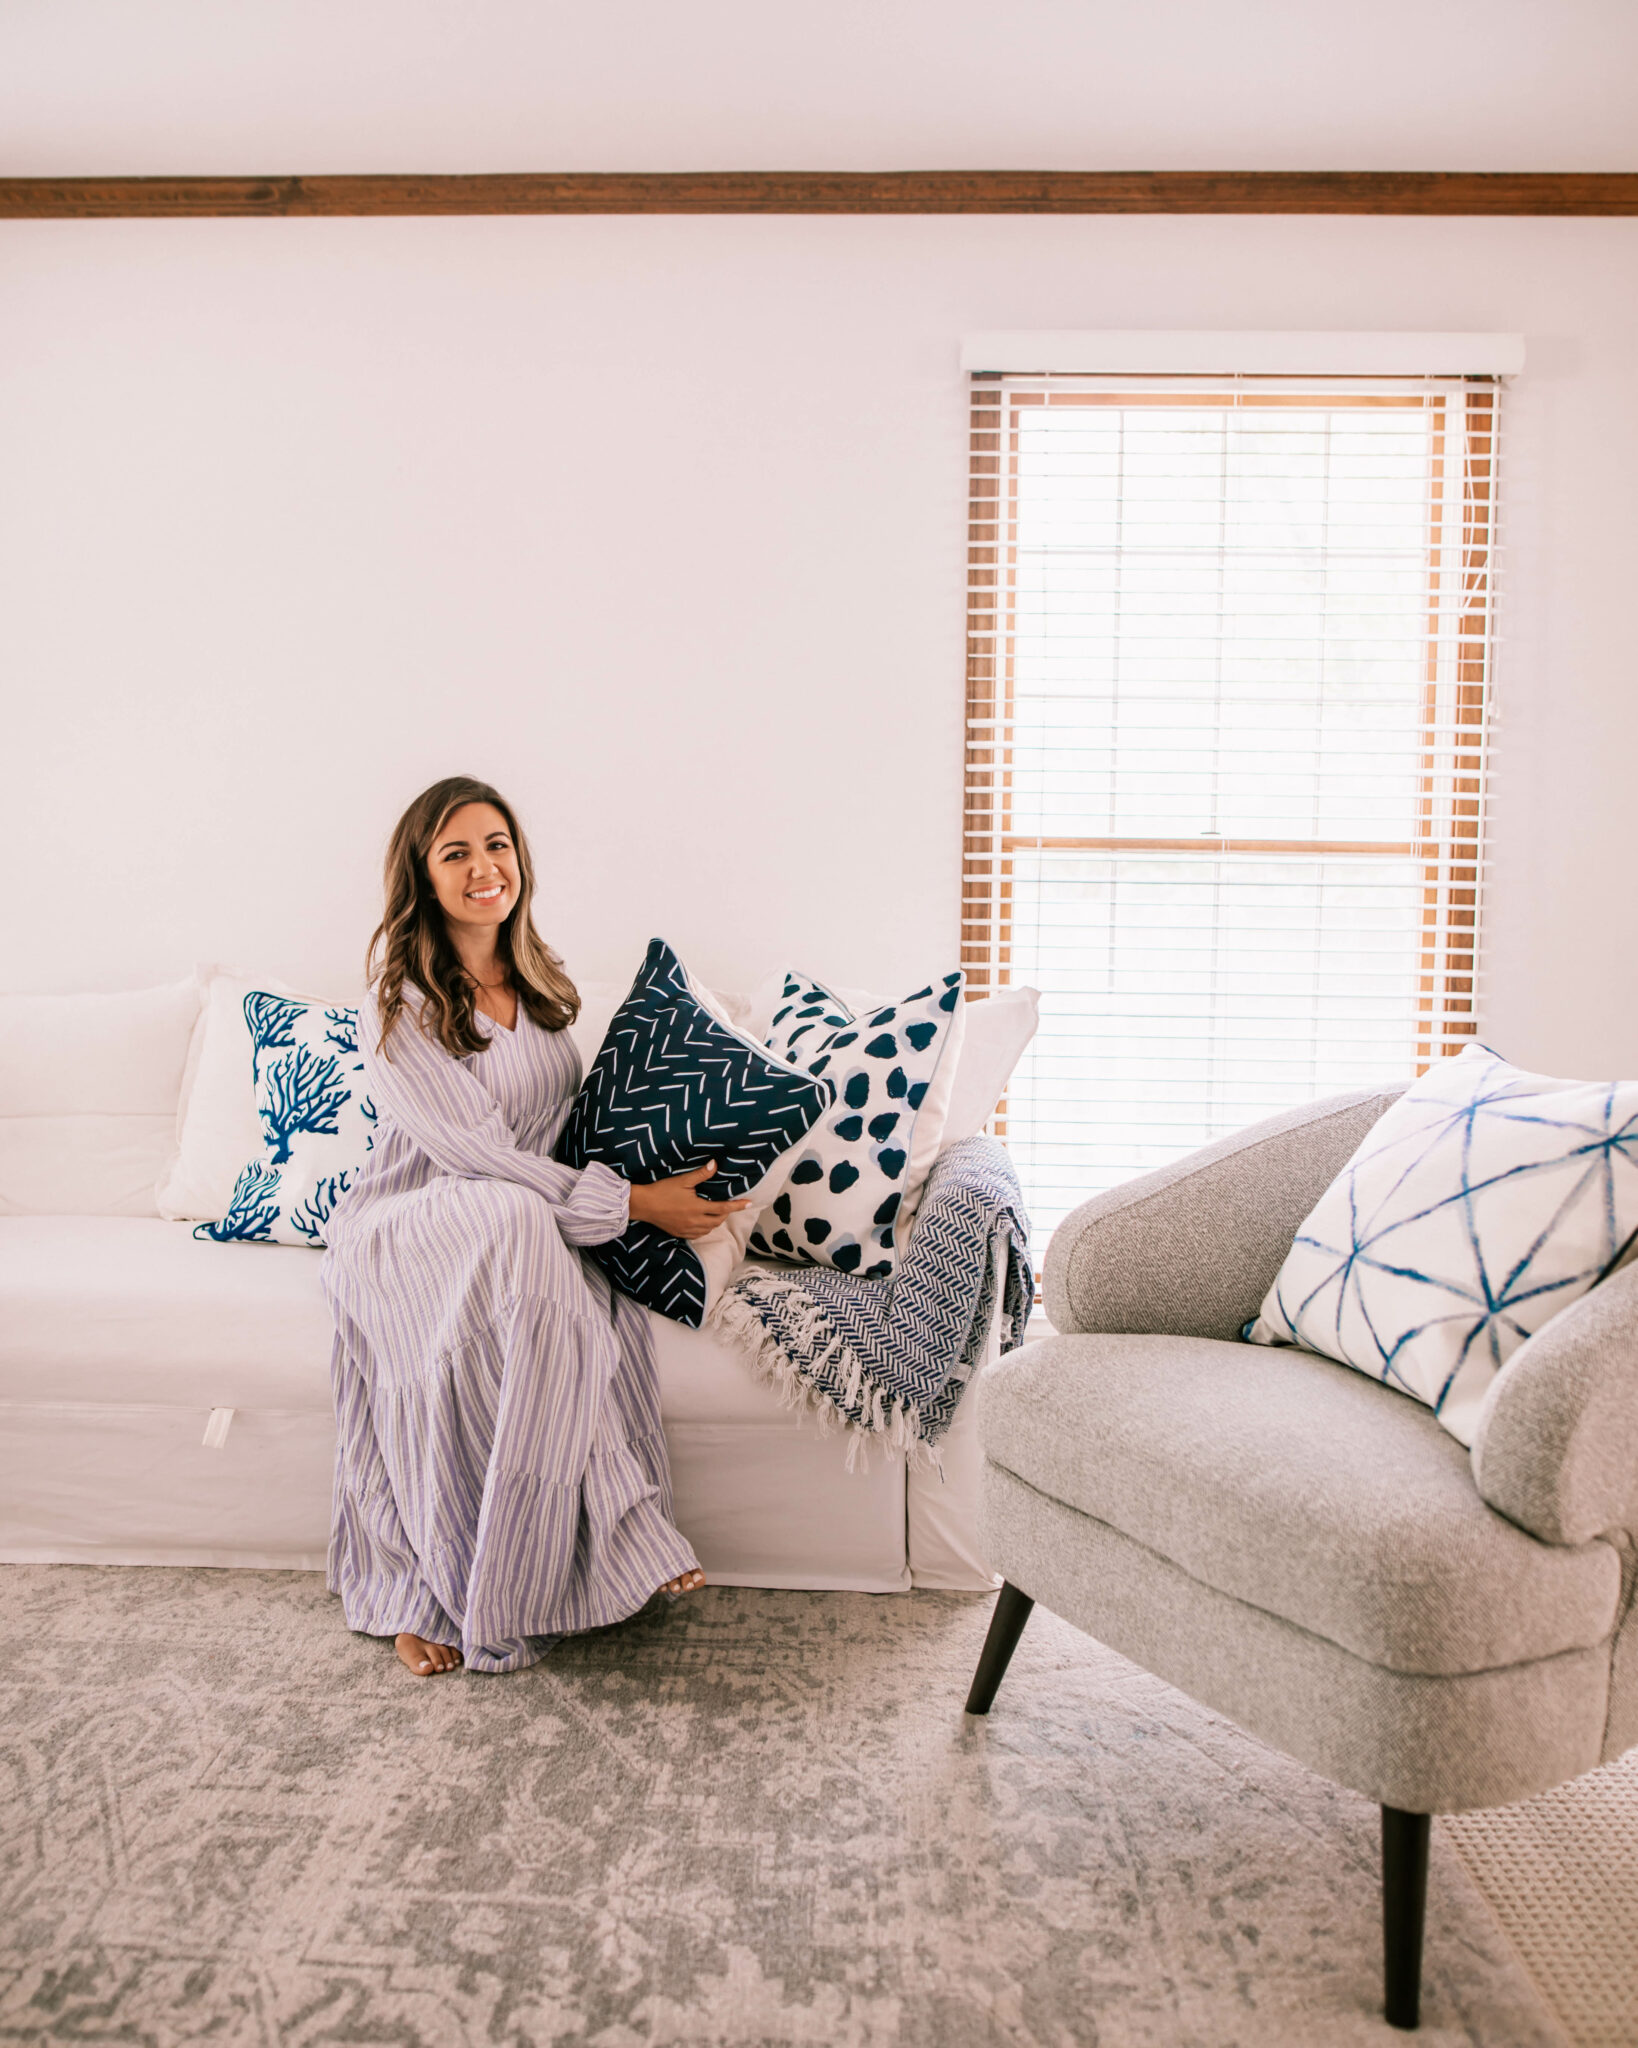 Thomasville Furniture by popular Chicago life and style blog, Glass of Glam: image of a woman wearing a purple stripe maxi dress and sitting in a living room decorated with a white couch, blue, grey and white accent rug, grey armchair, and blue and white throw pillows.